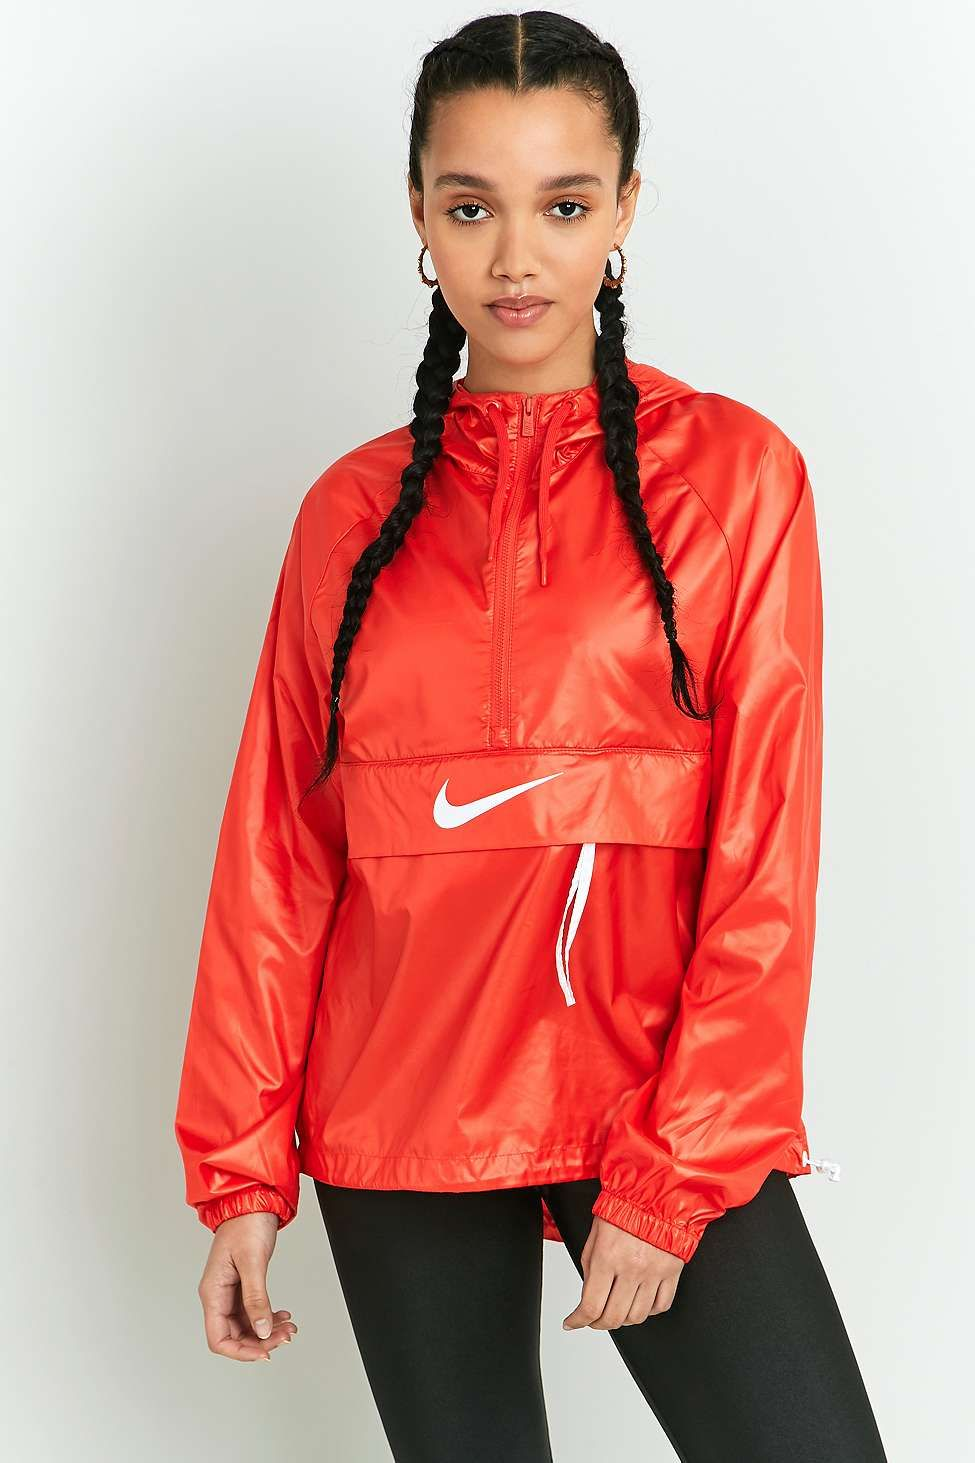 025ba3346 Nike Swoosh Red Half-Zip Windbreaker | Jacket insperation | Half zip ...